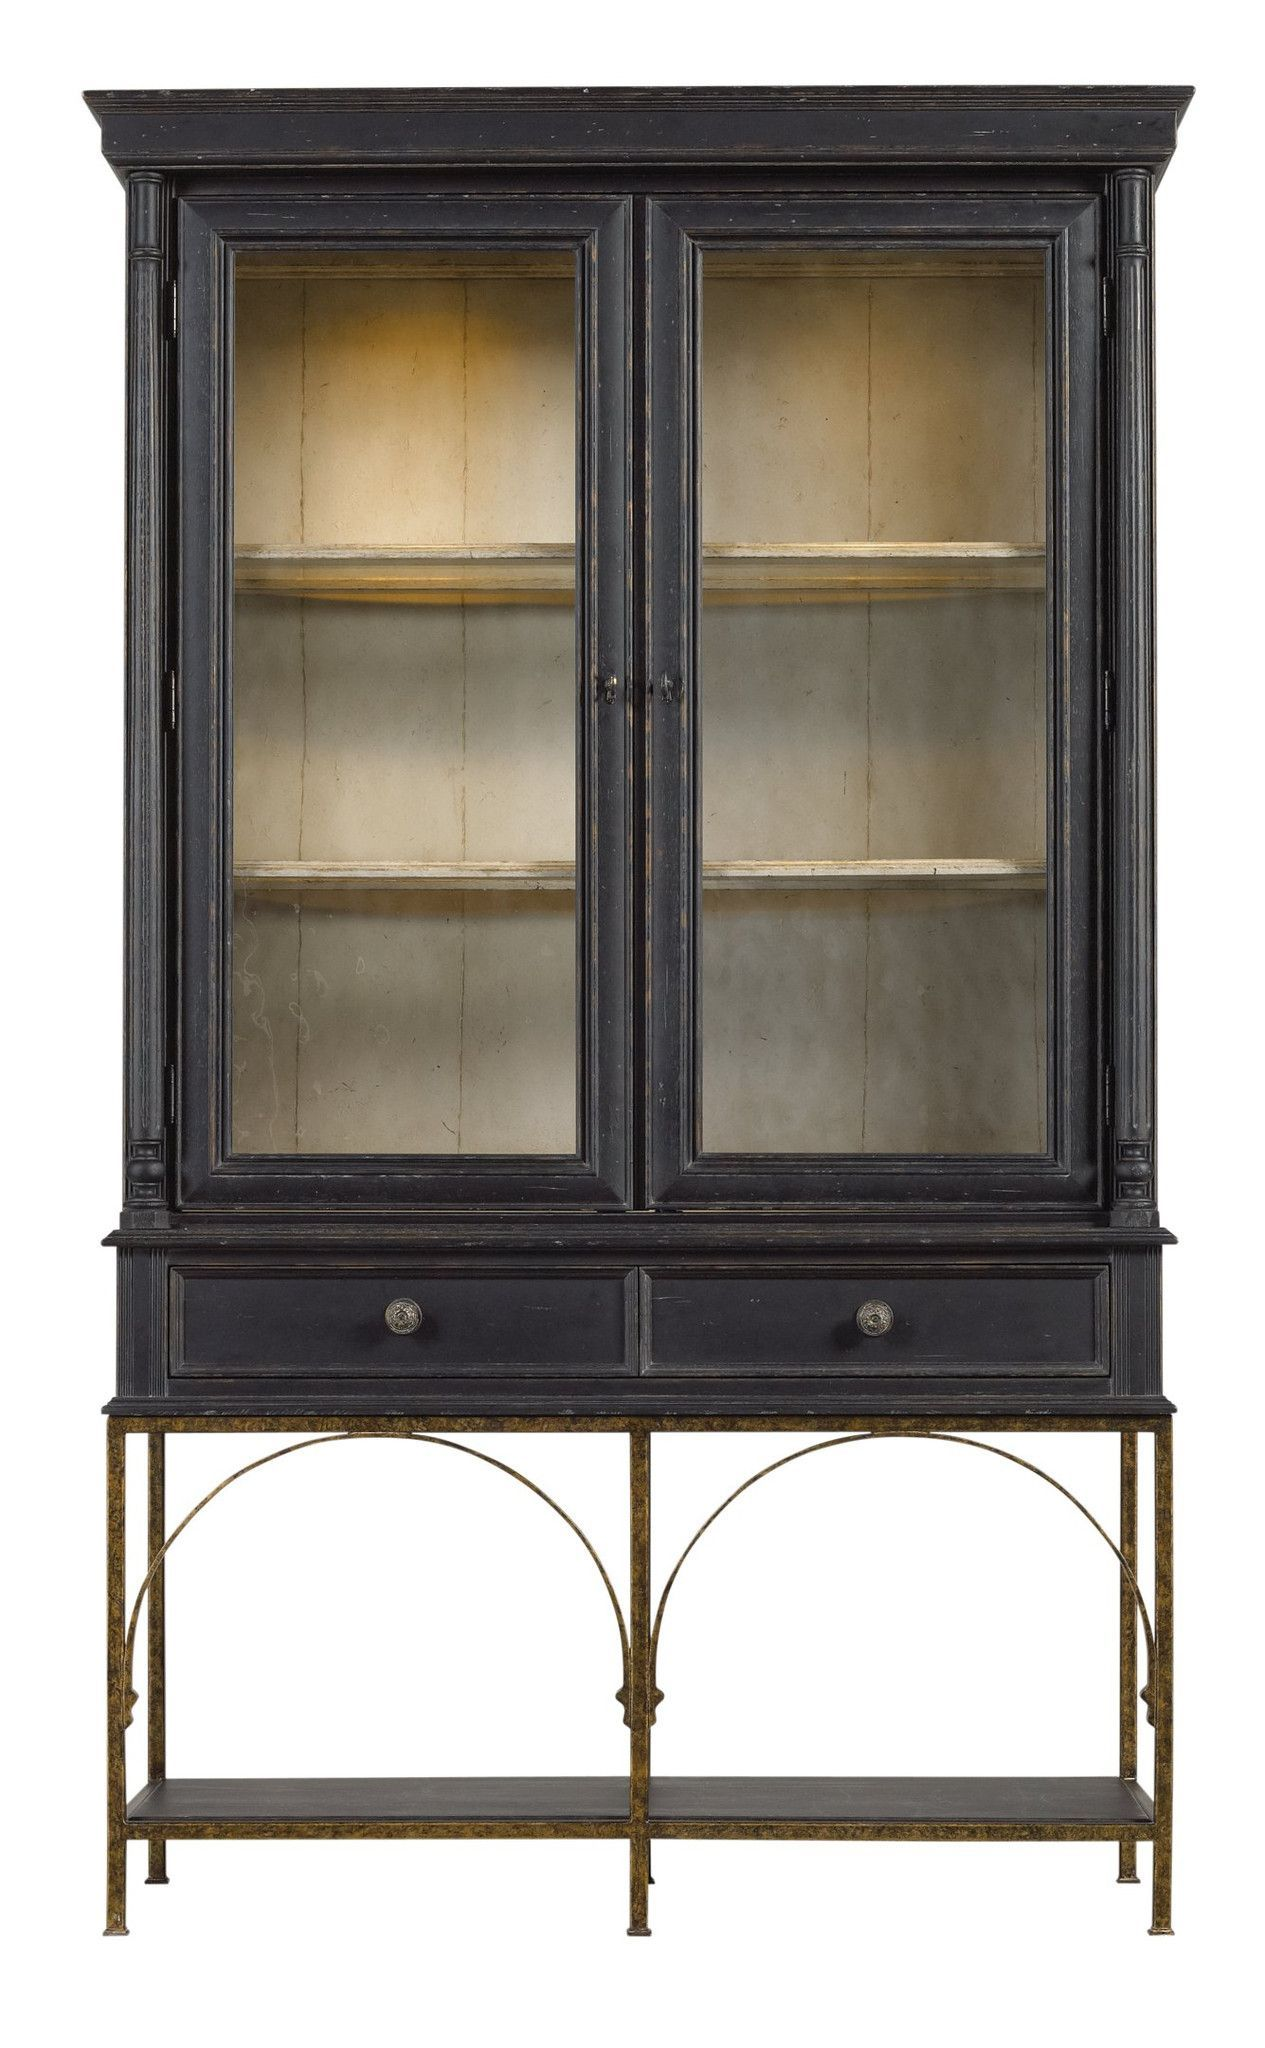 We Offer Our Own Antique Inspired Find In The Salon Cercle Cabinet Resting On A Metal Base S Gl